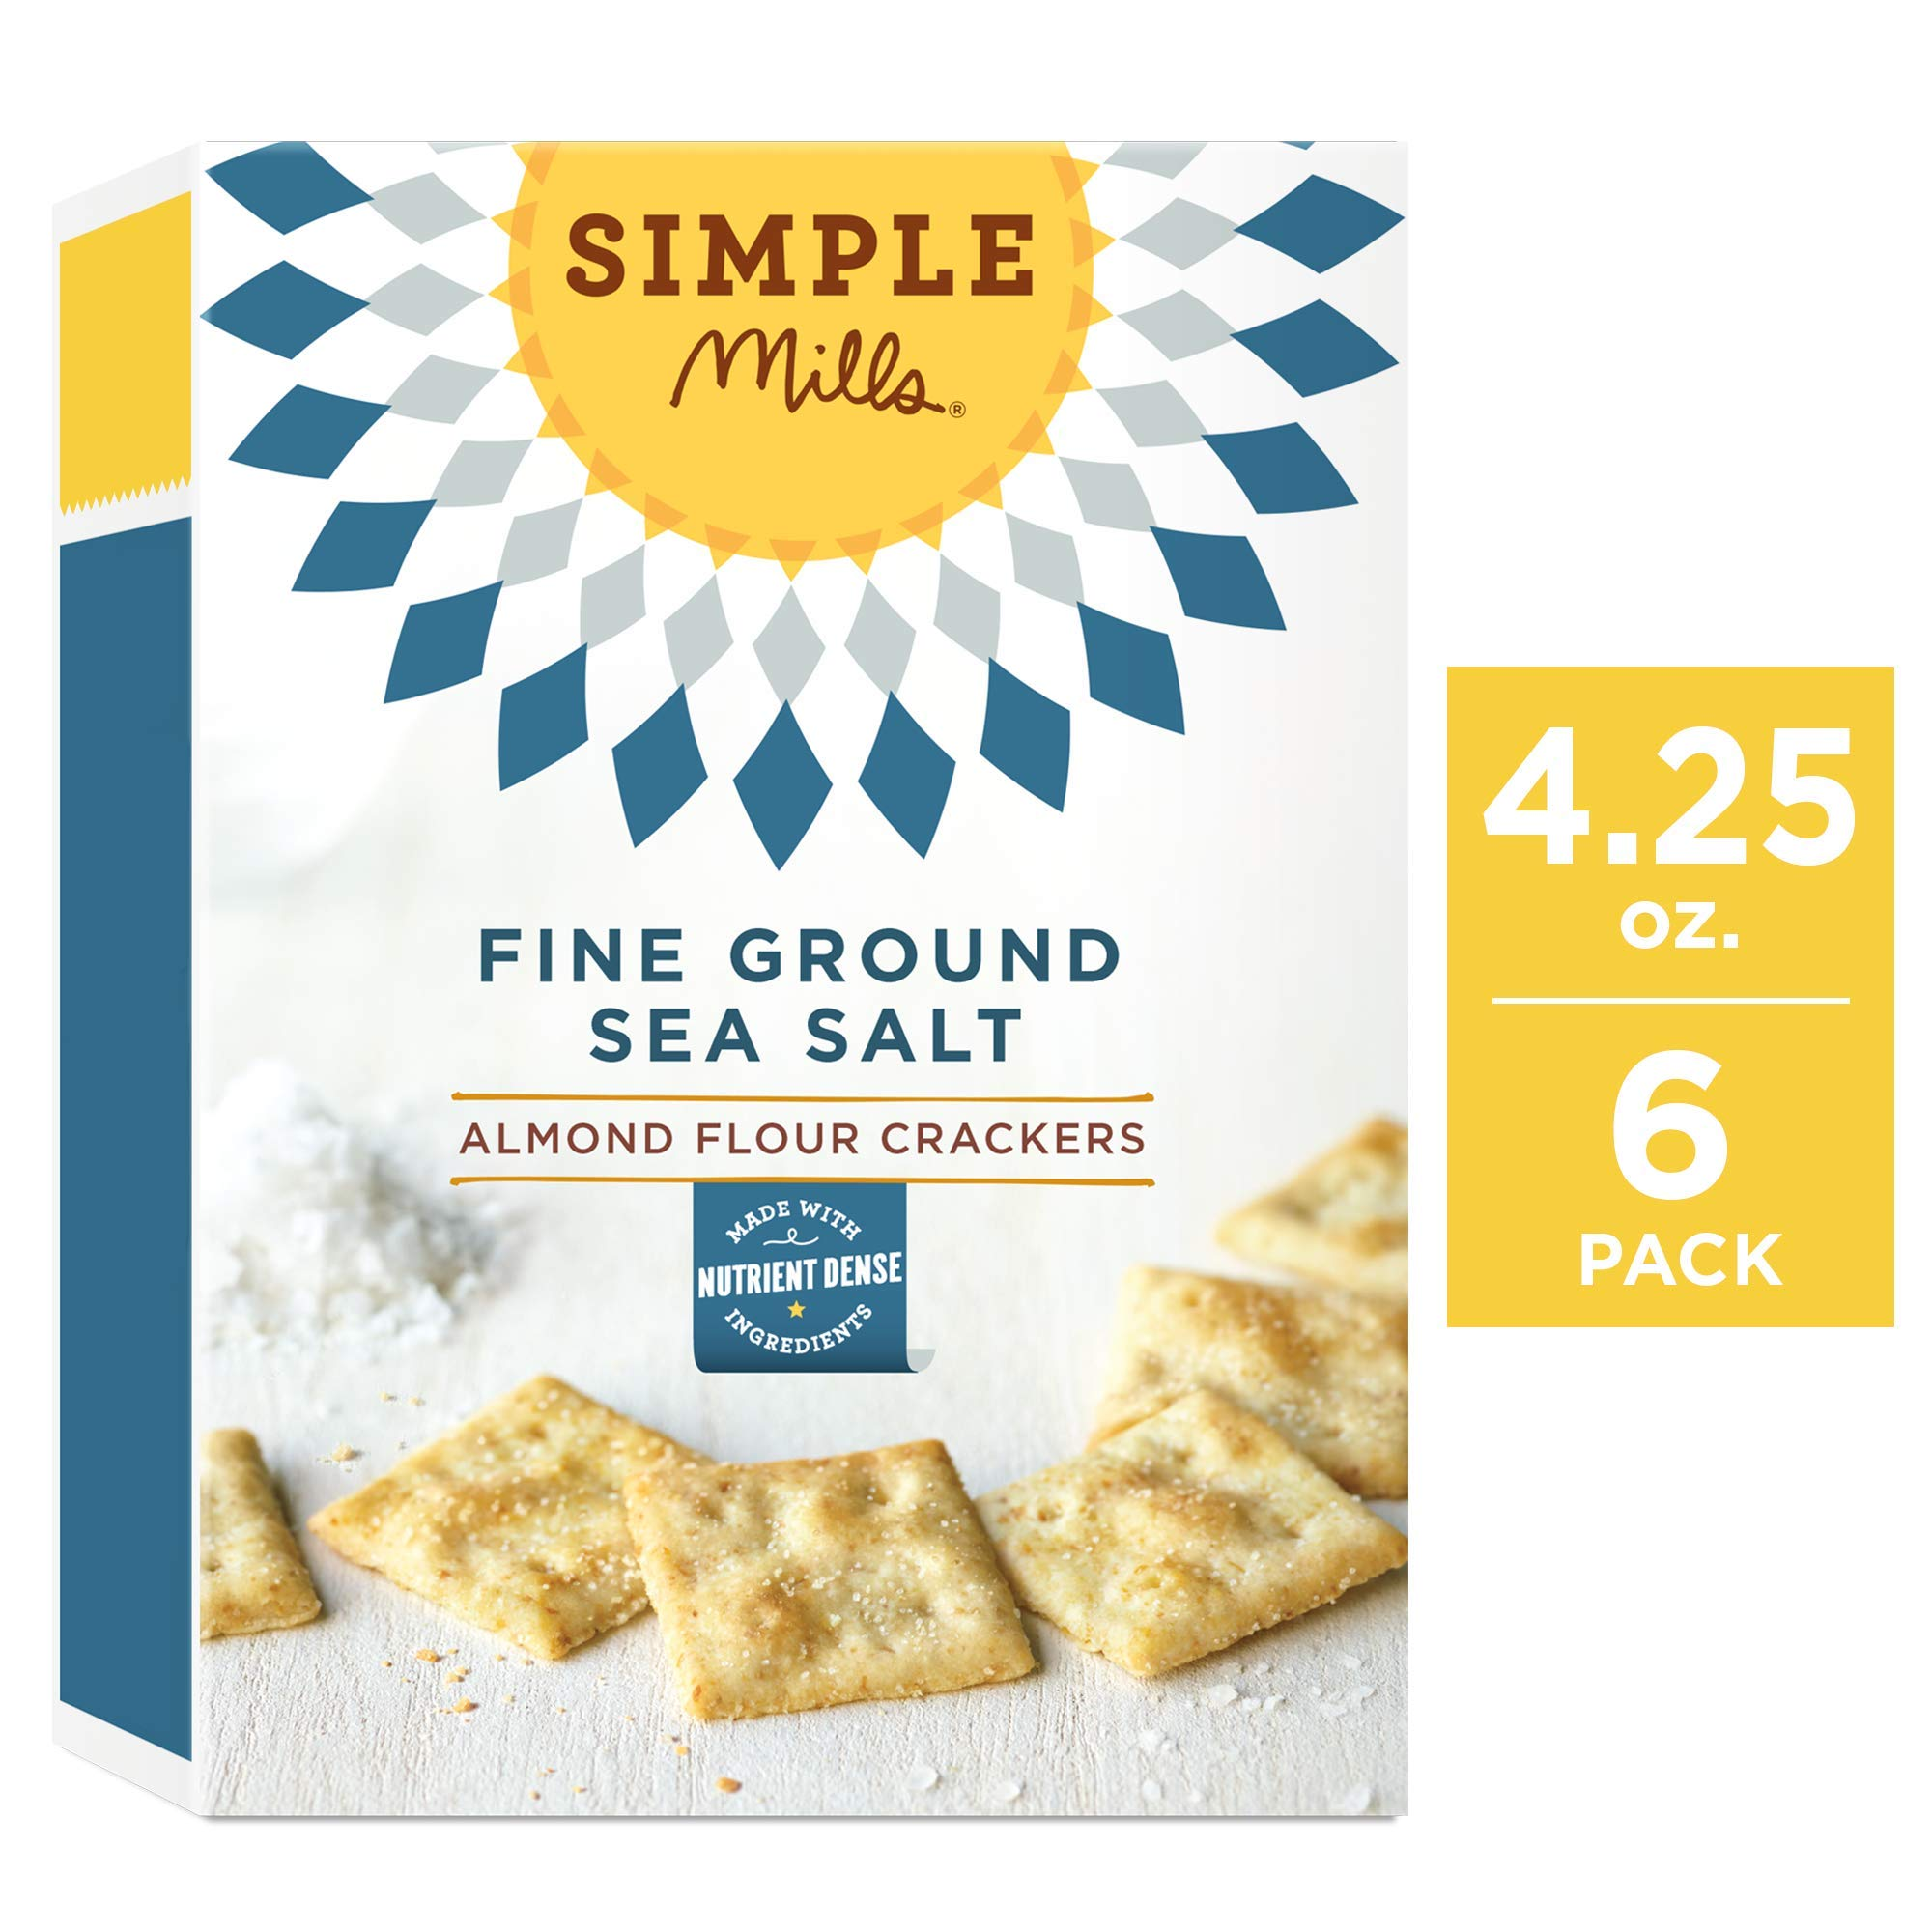 Simple Mills Almond Flour Crackers, Fine Ground Sea Salt, 4.25 Ounce (Pack of 6) by Simple Mills